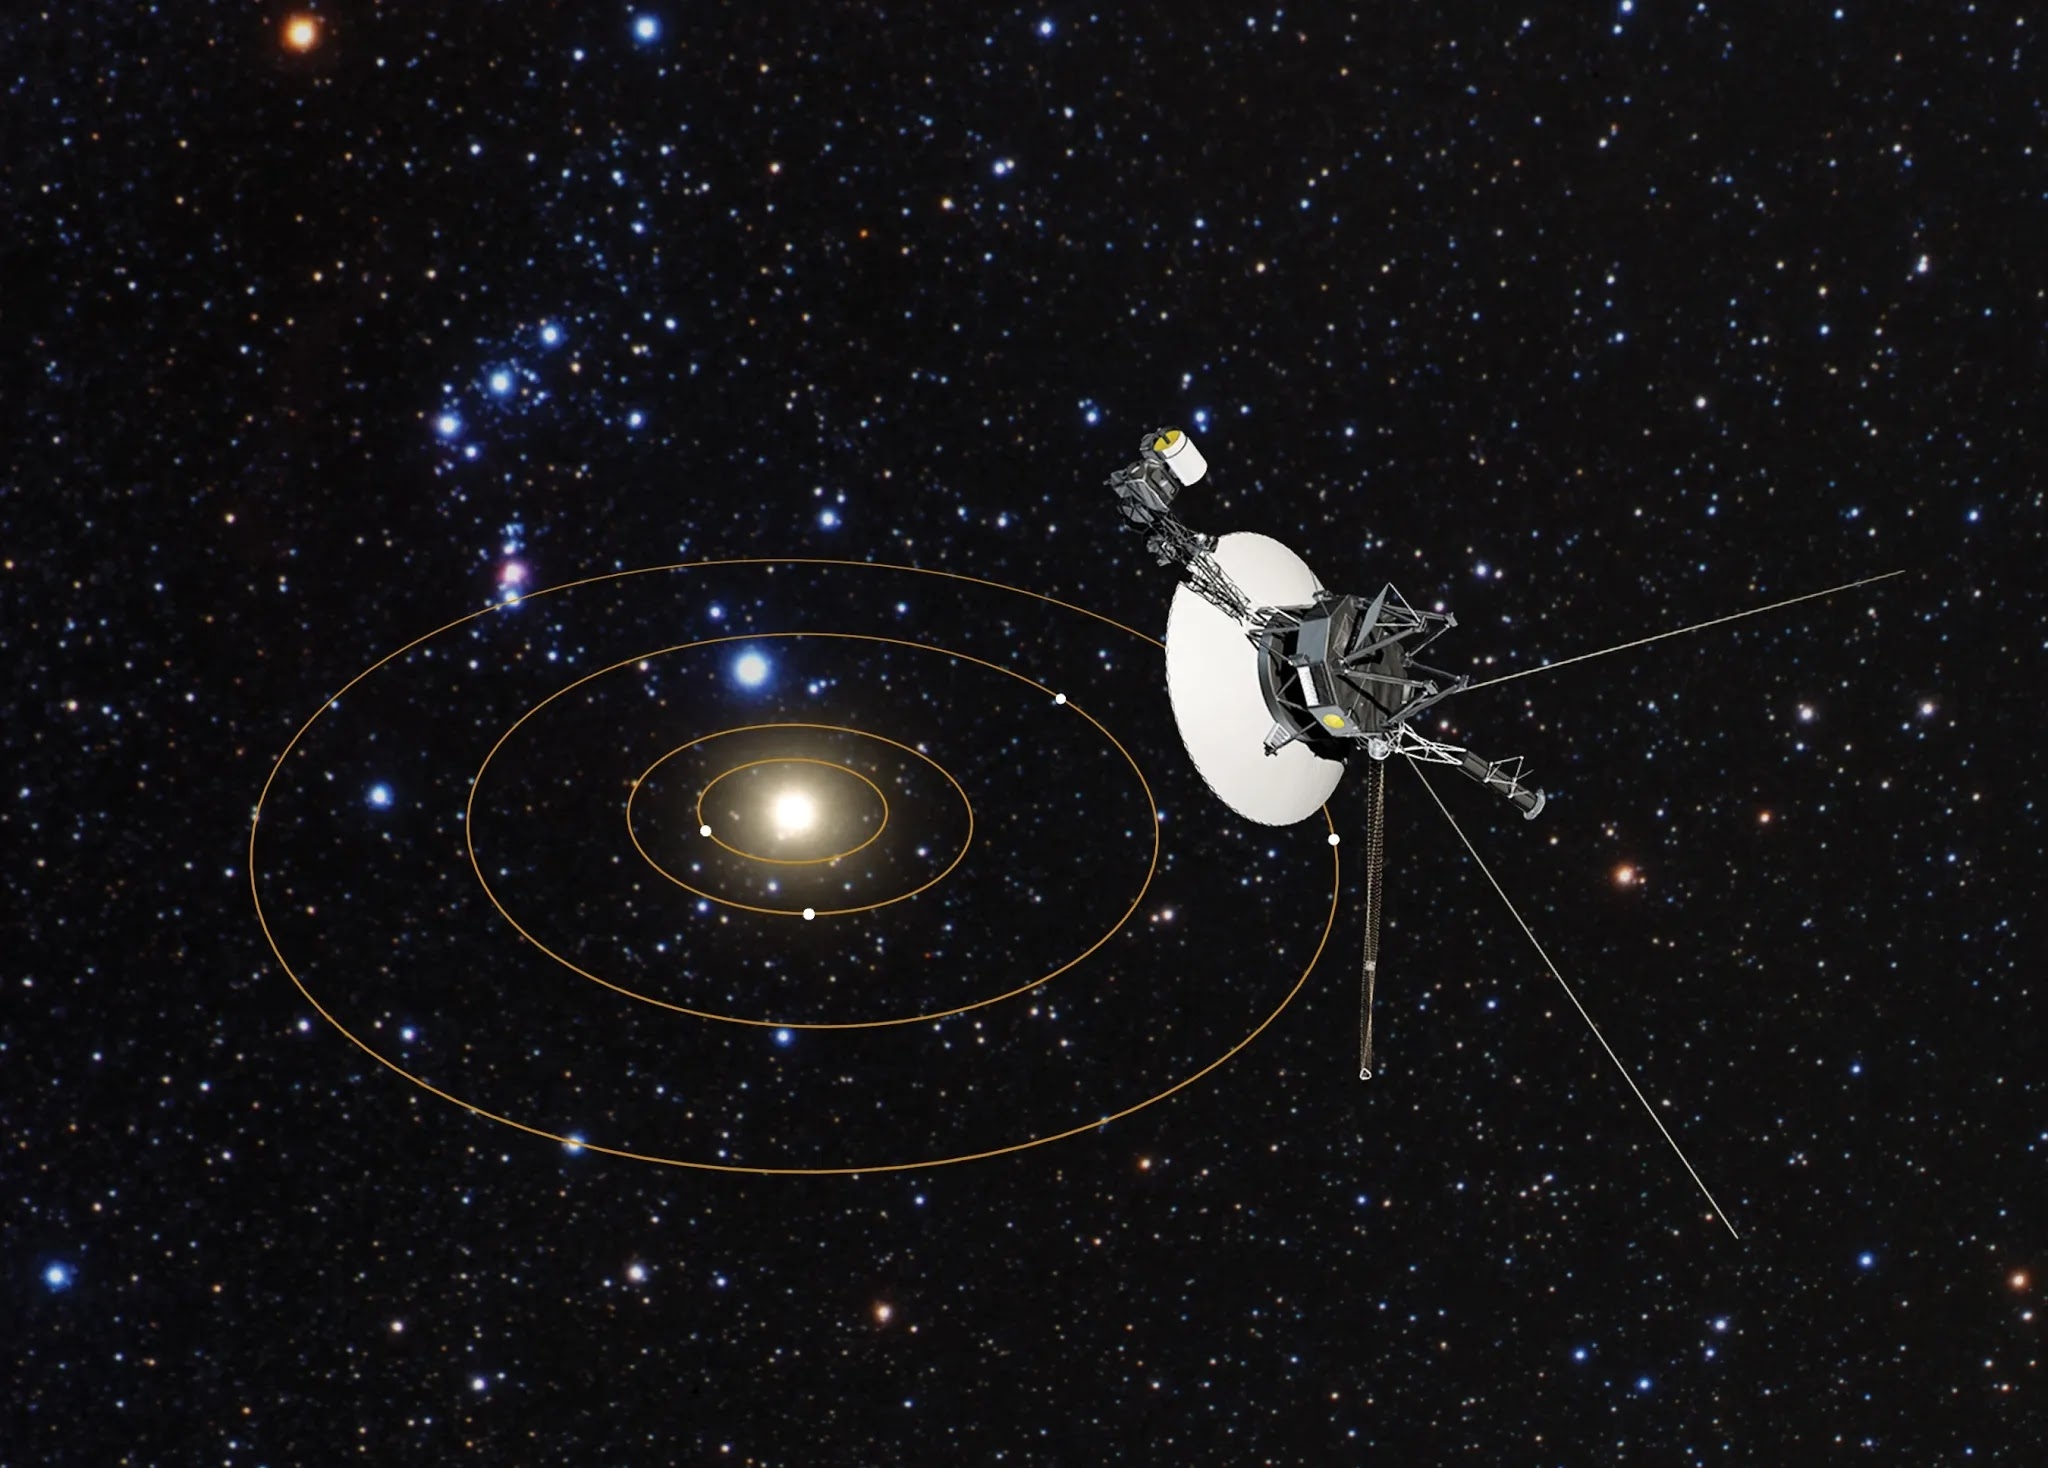 NASA Voyager 1 Has Detected A Mysterious Cosmic 'Hum' In Deep Space